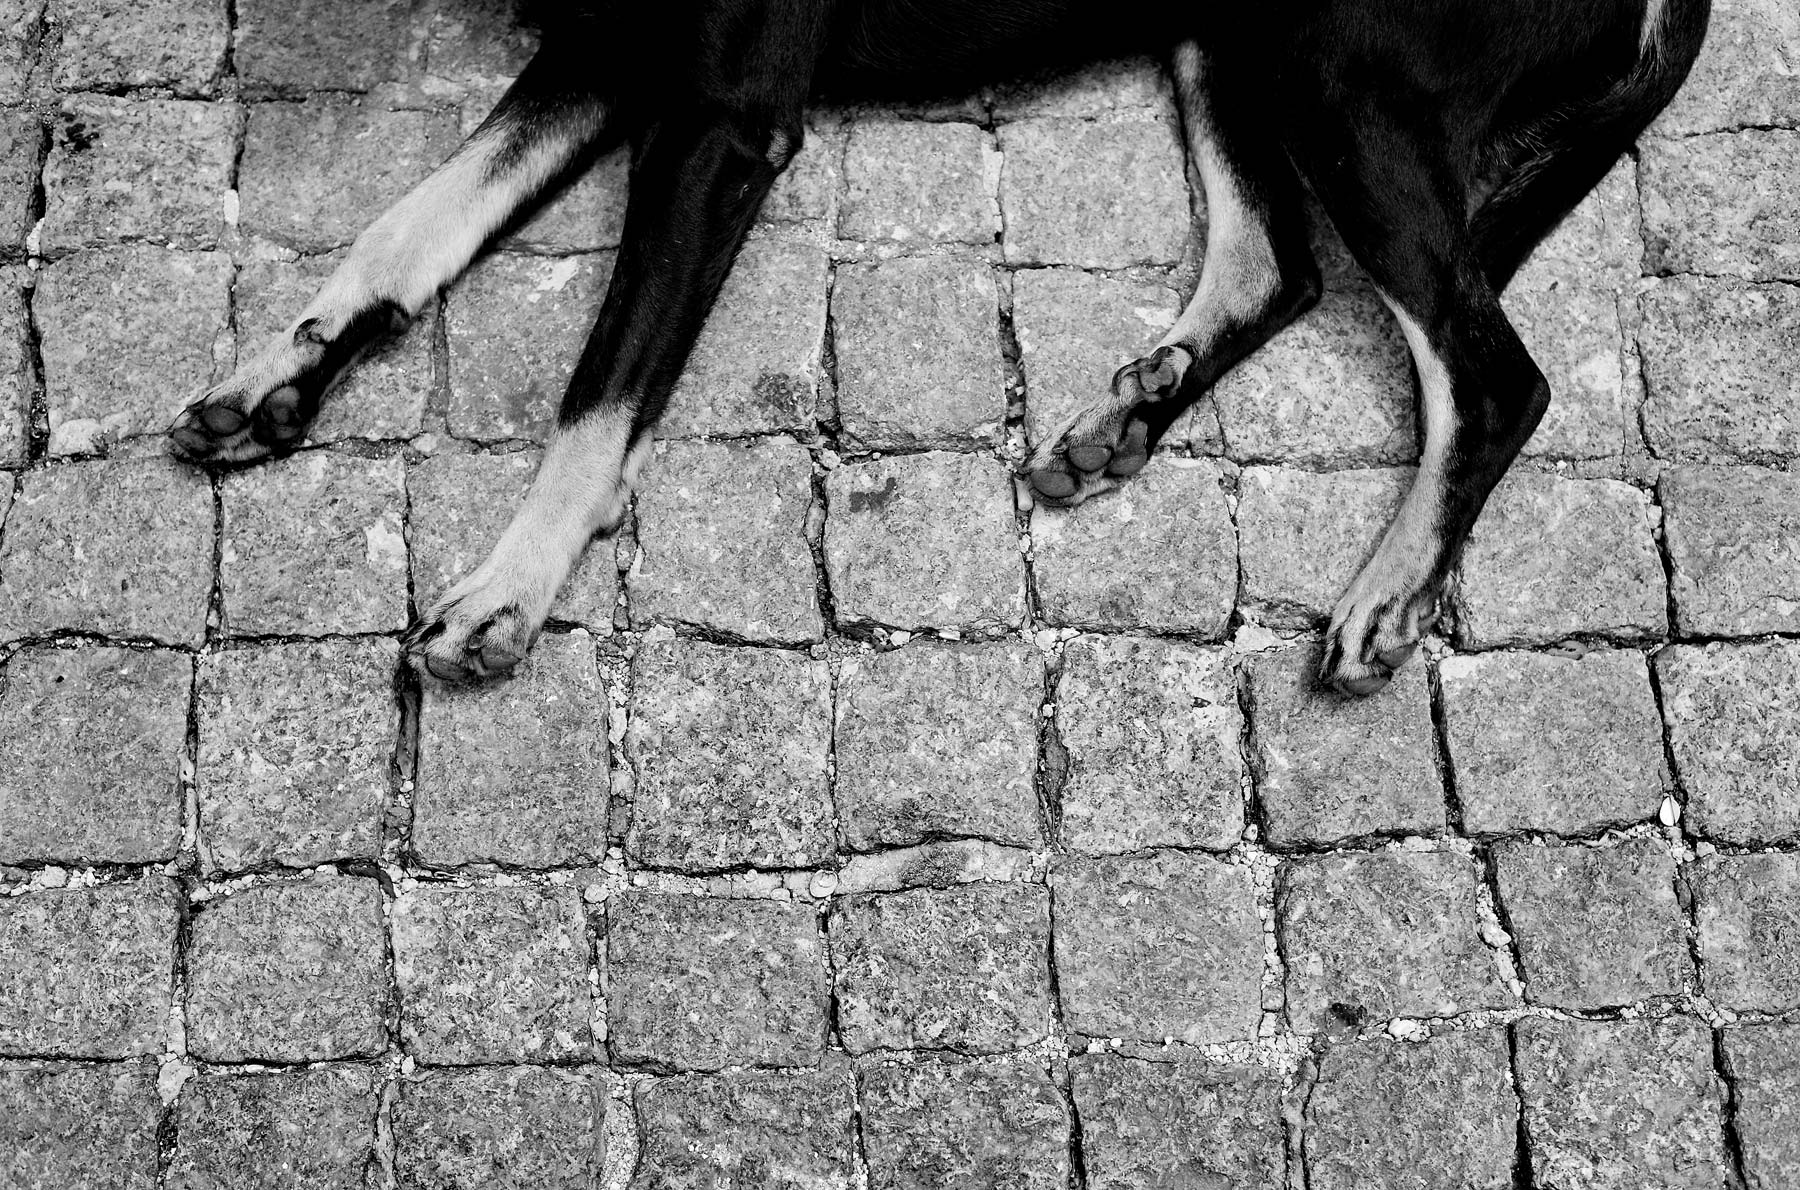 JoshuaBright_Portugal_Dog_Sleeping_blackandwhite_cobbles